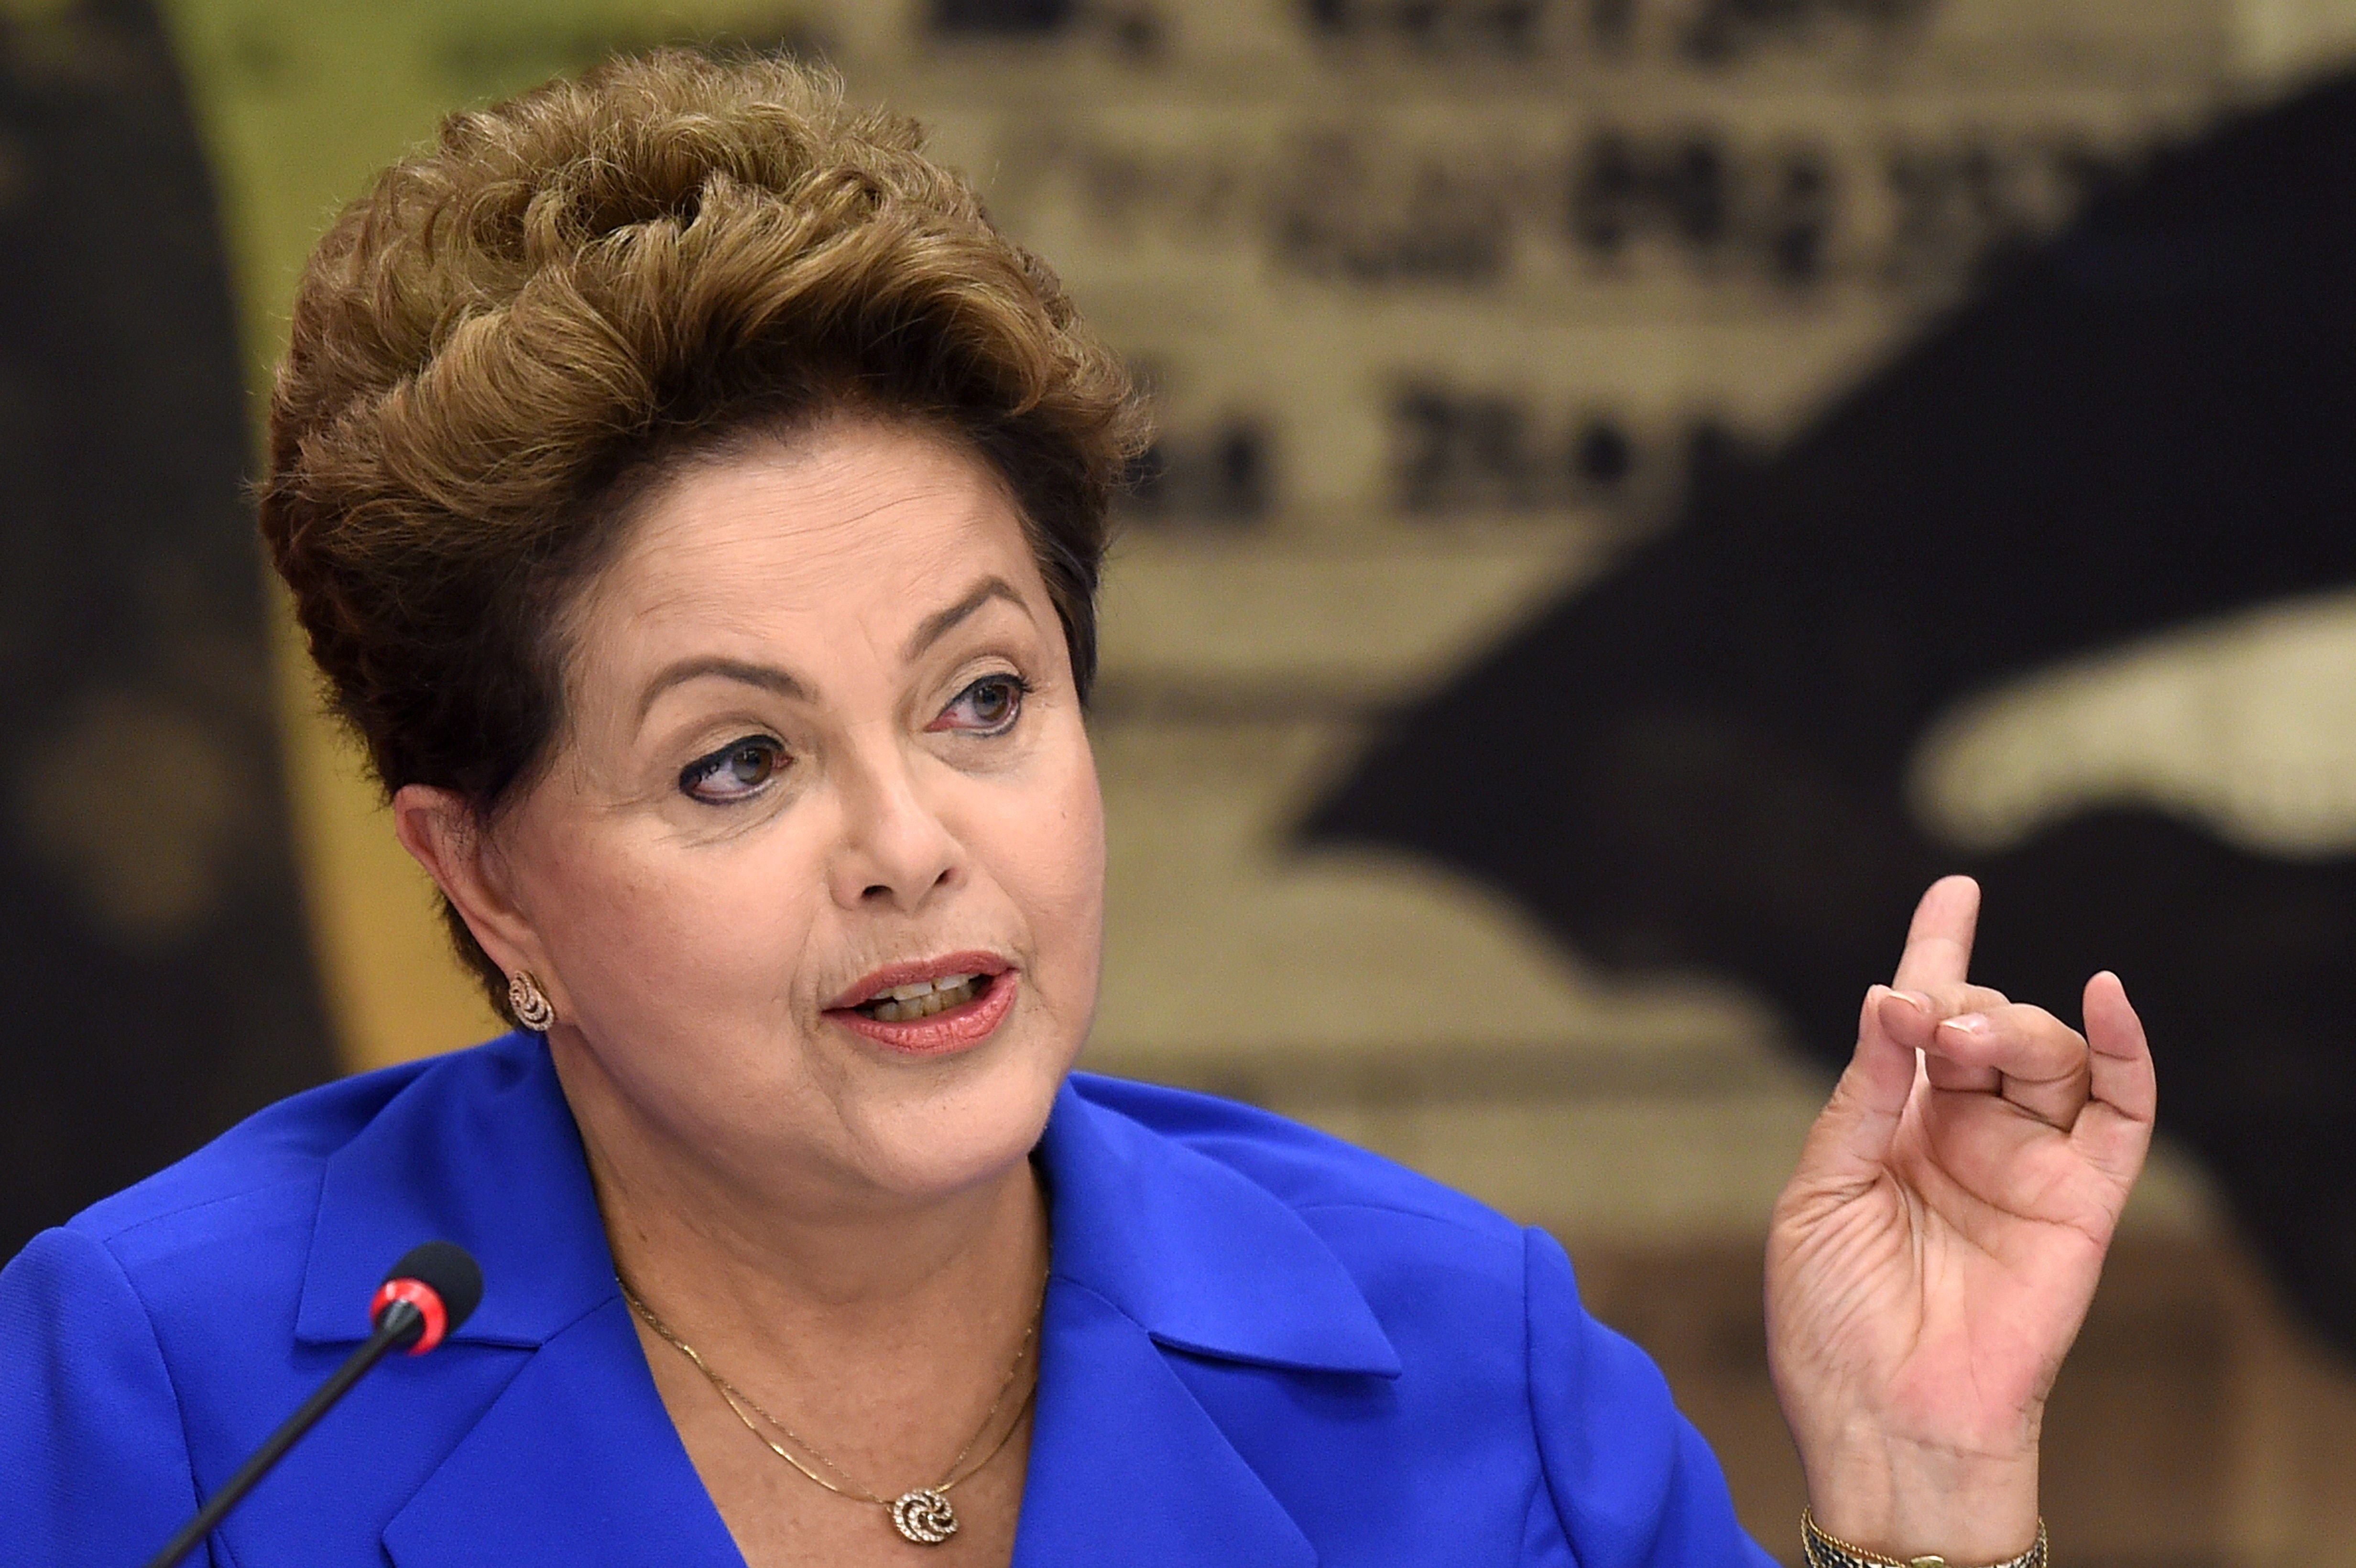 Brazil's President and presidential candidate for the Workers' Party Dilma Rousseff, speaks during a meeting with Governors and Senators elected in the first round of general elections, in Brasilia, Brazil on Oct. 7, 2014.